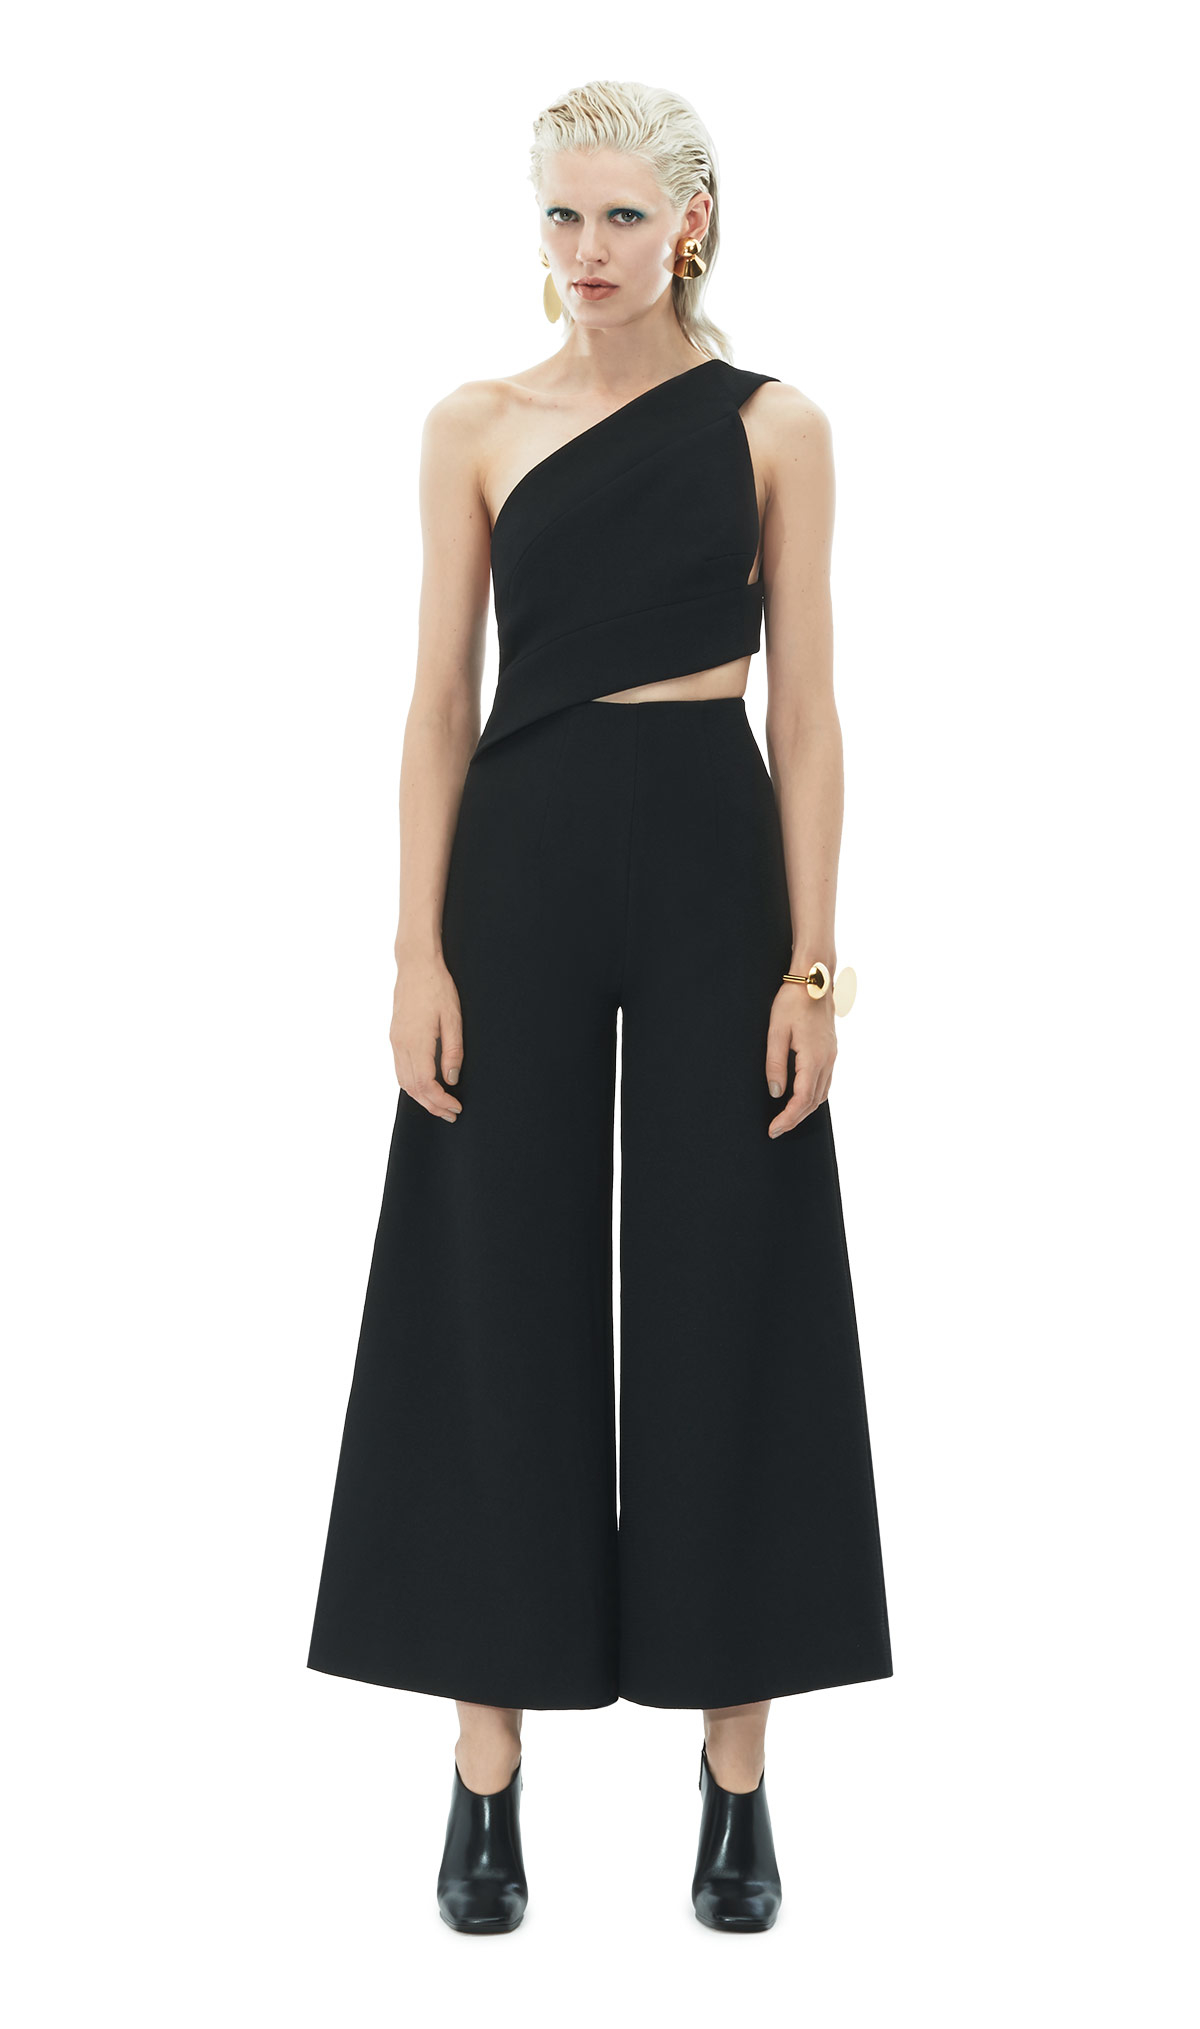 72aef209acd Solace London Addison Jumpsuit Black in Black - Lyst